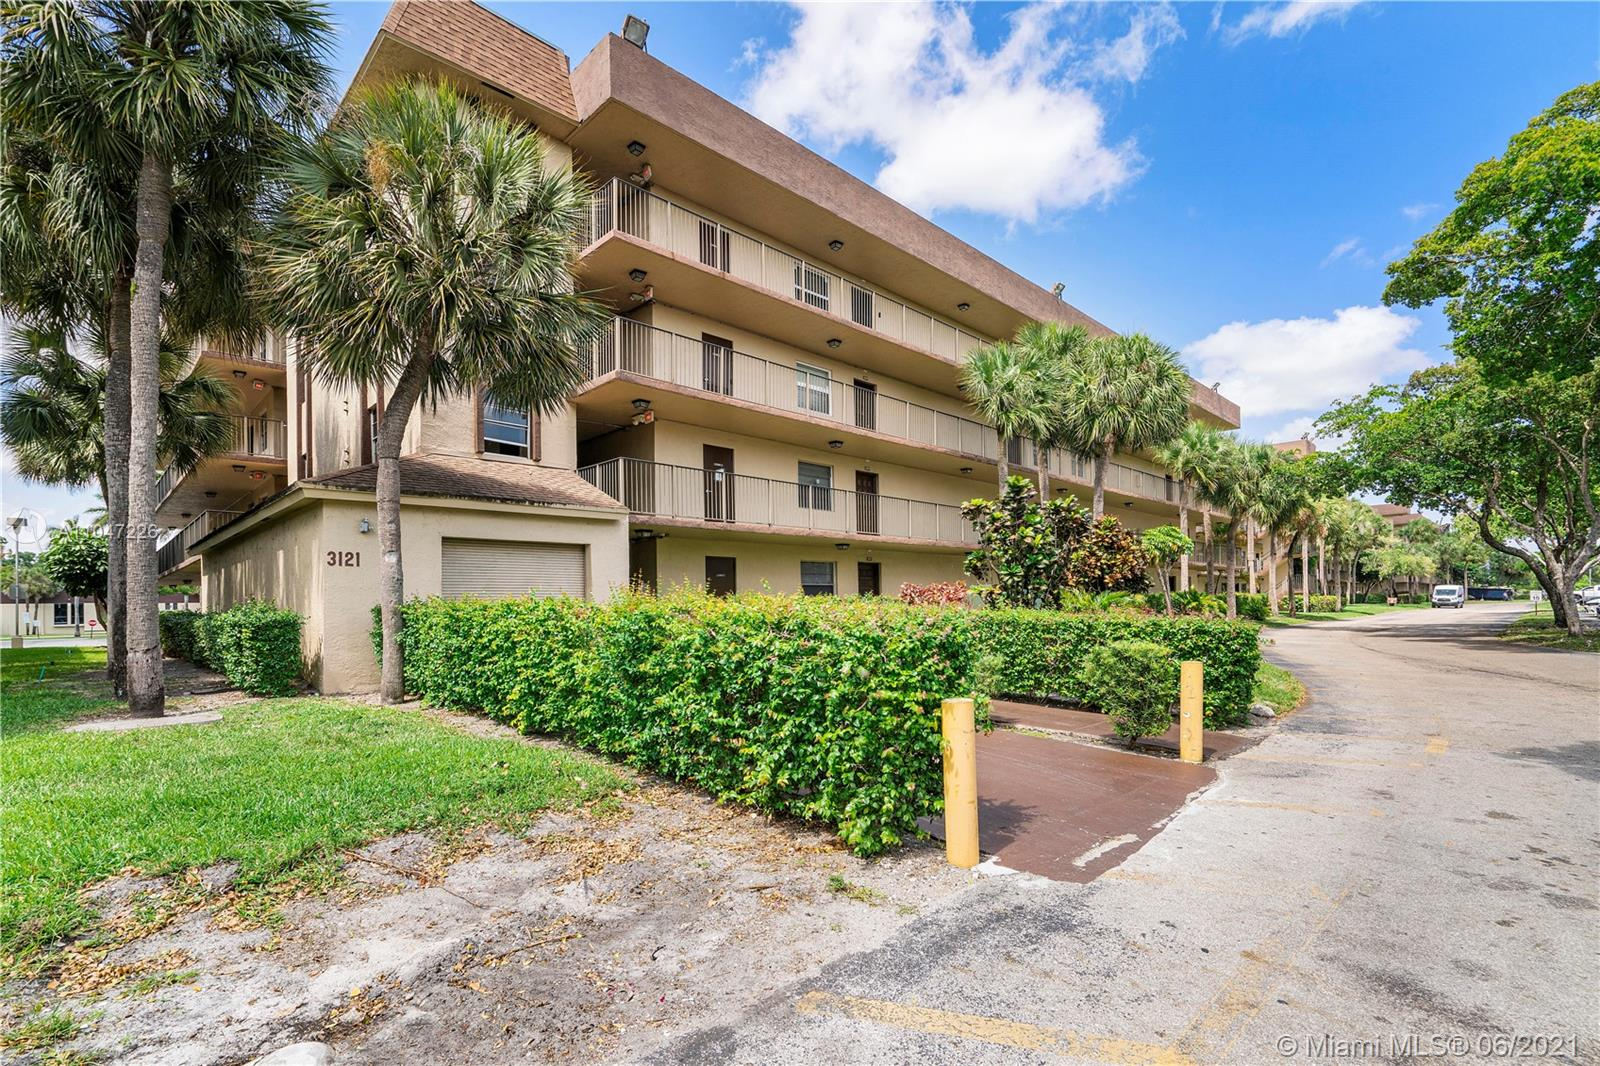 3121 NW 47th Ter Unit 106, Lauderdale Lakes, Florida 33319